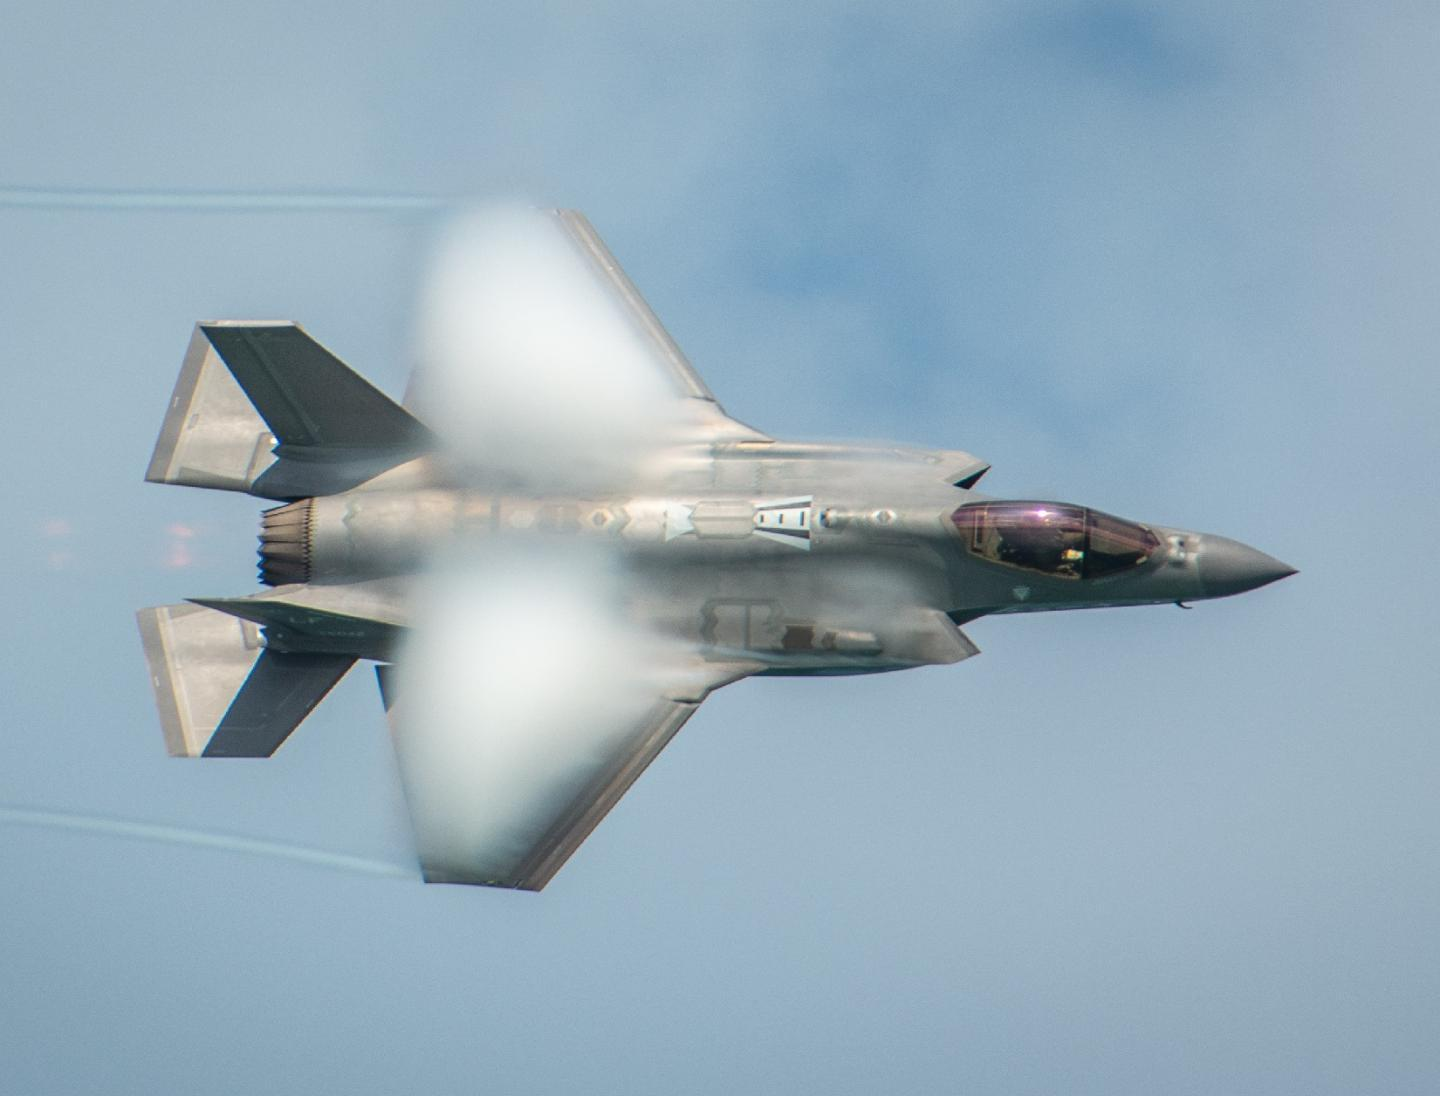 The F-35 Is Getting a New Feature That Could Be a Game Changer